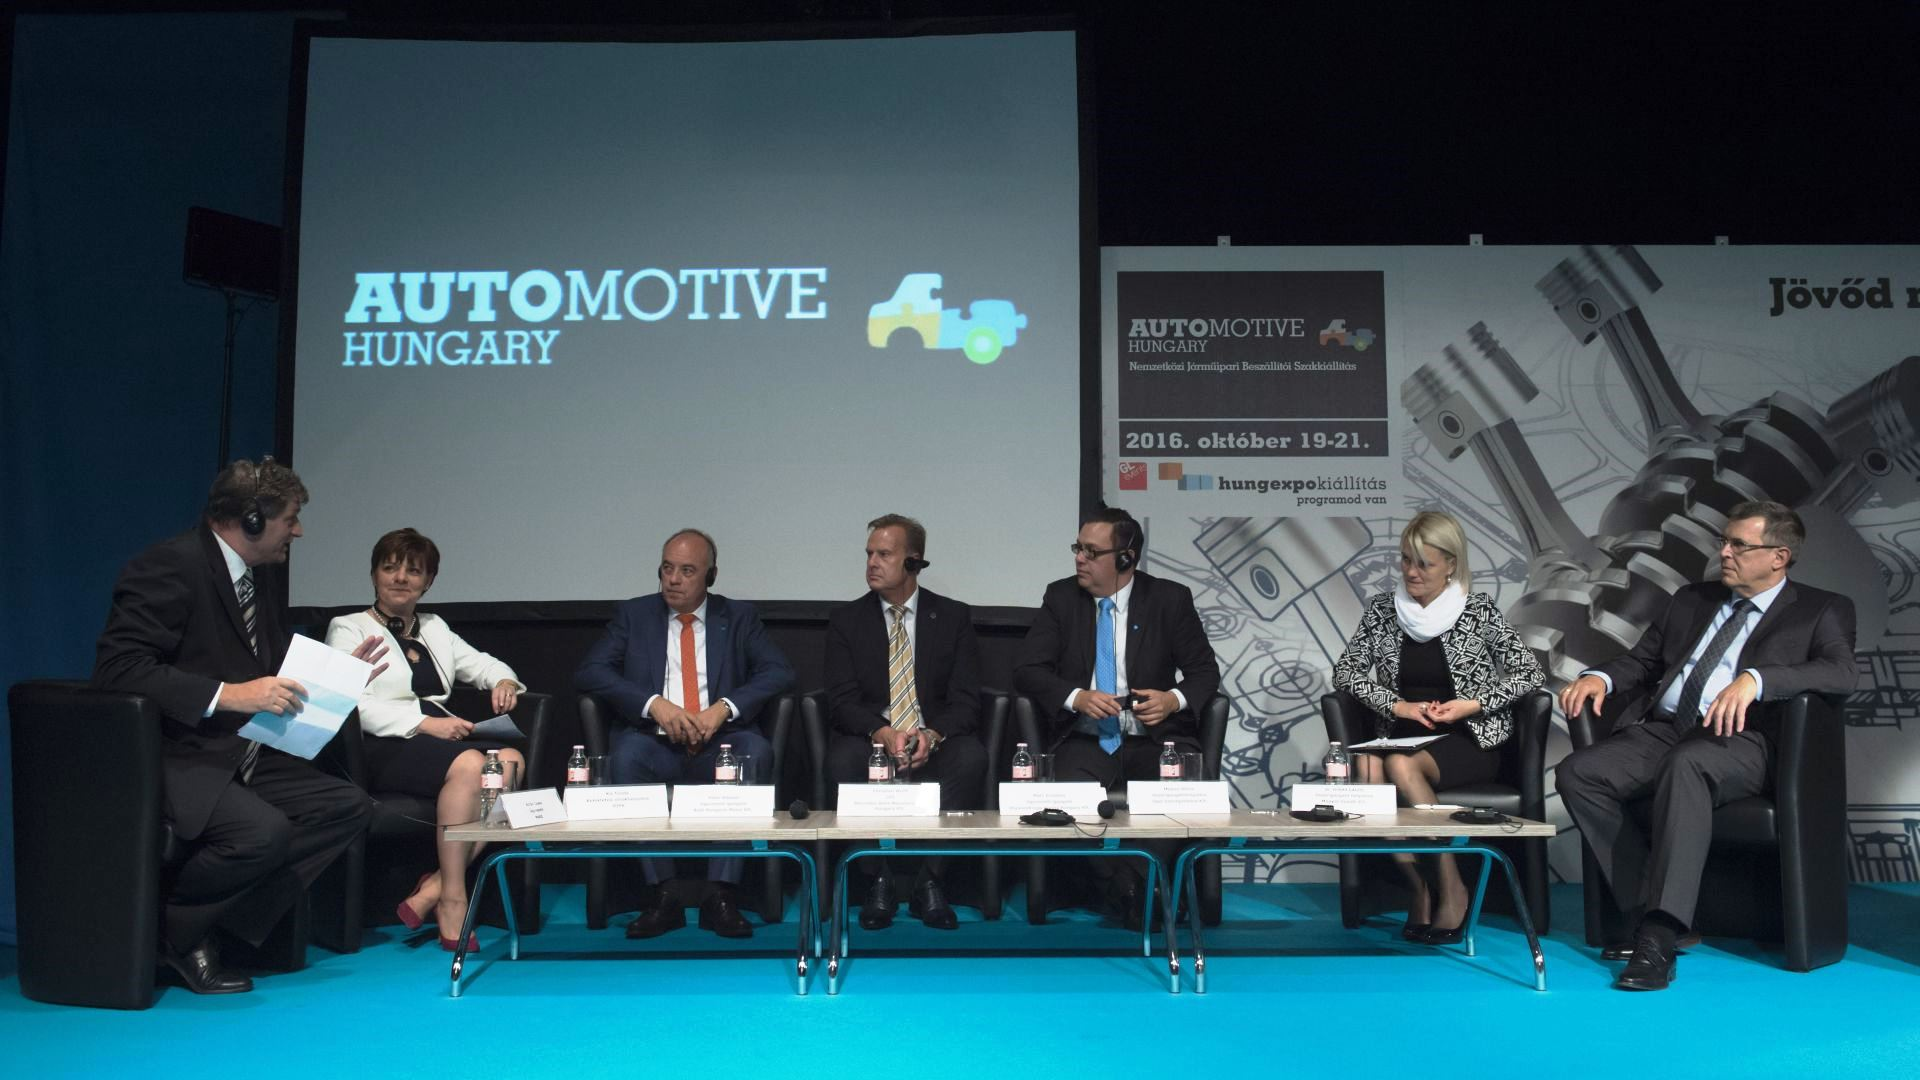 Roundtable-discussion with representatives of the government and automotive manufacturers